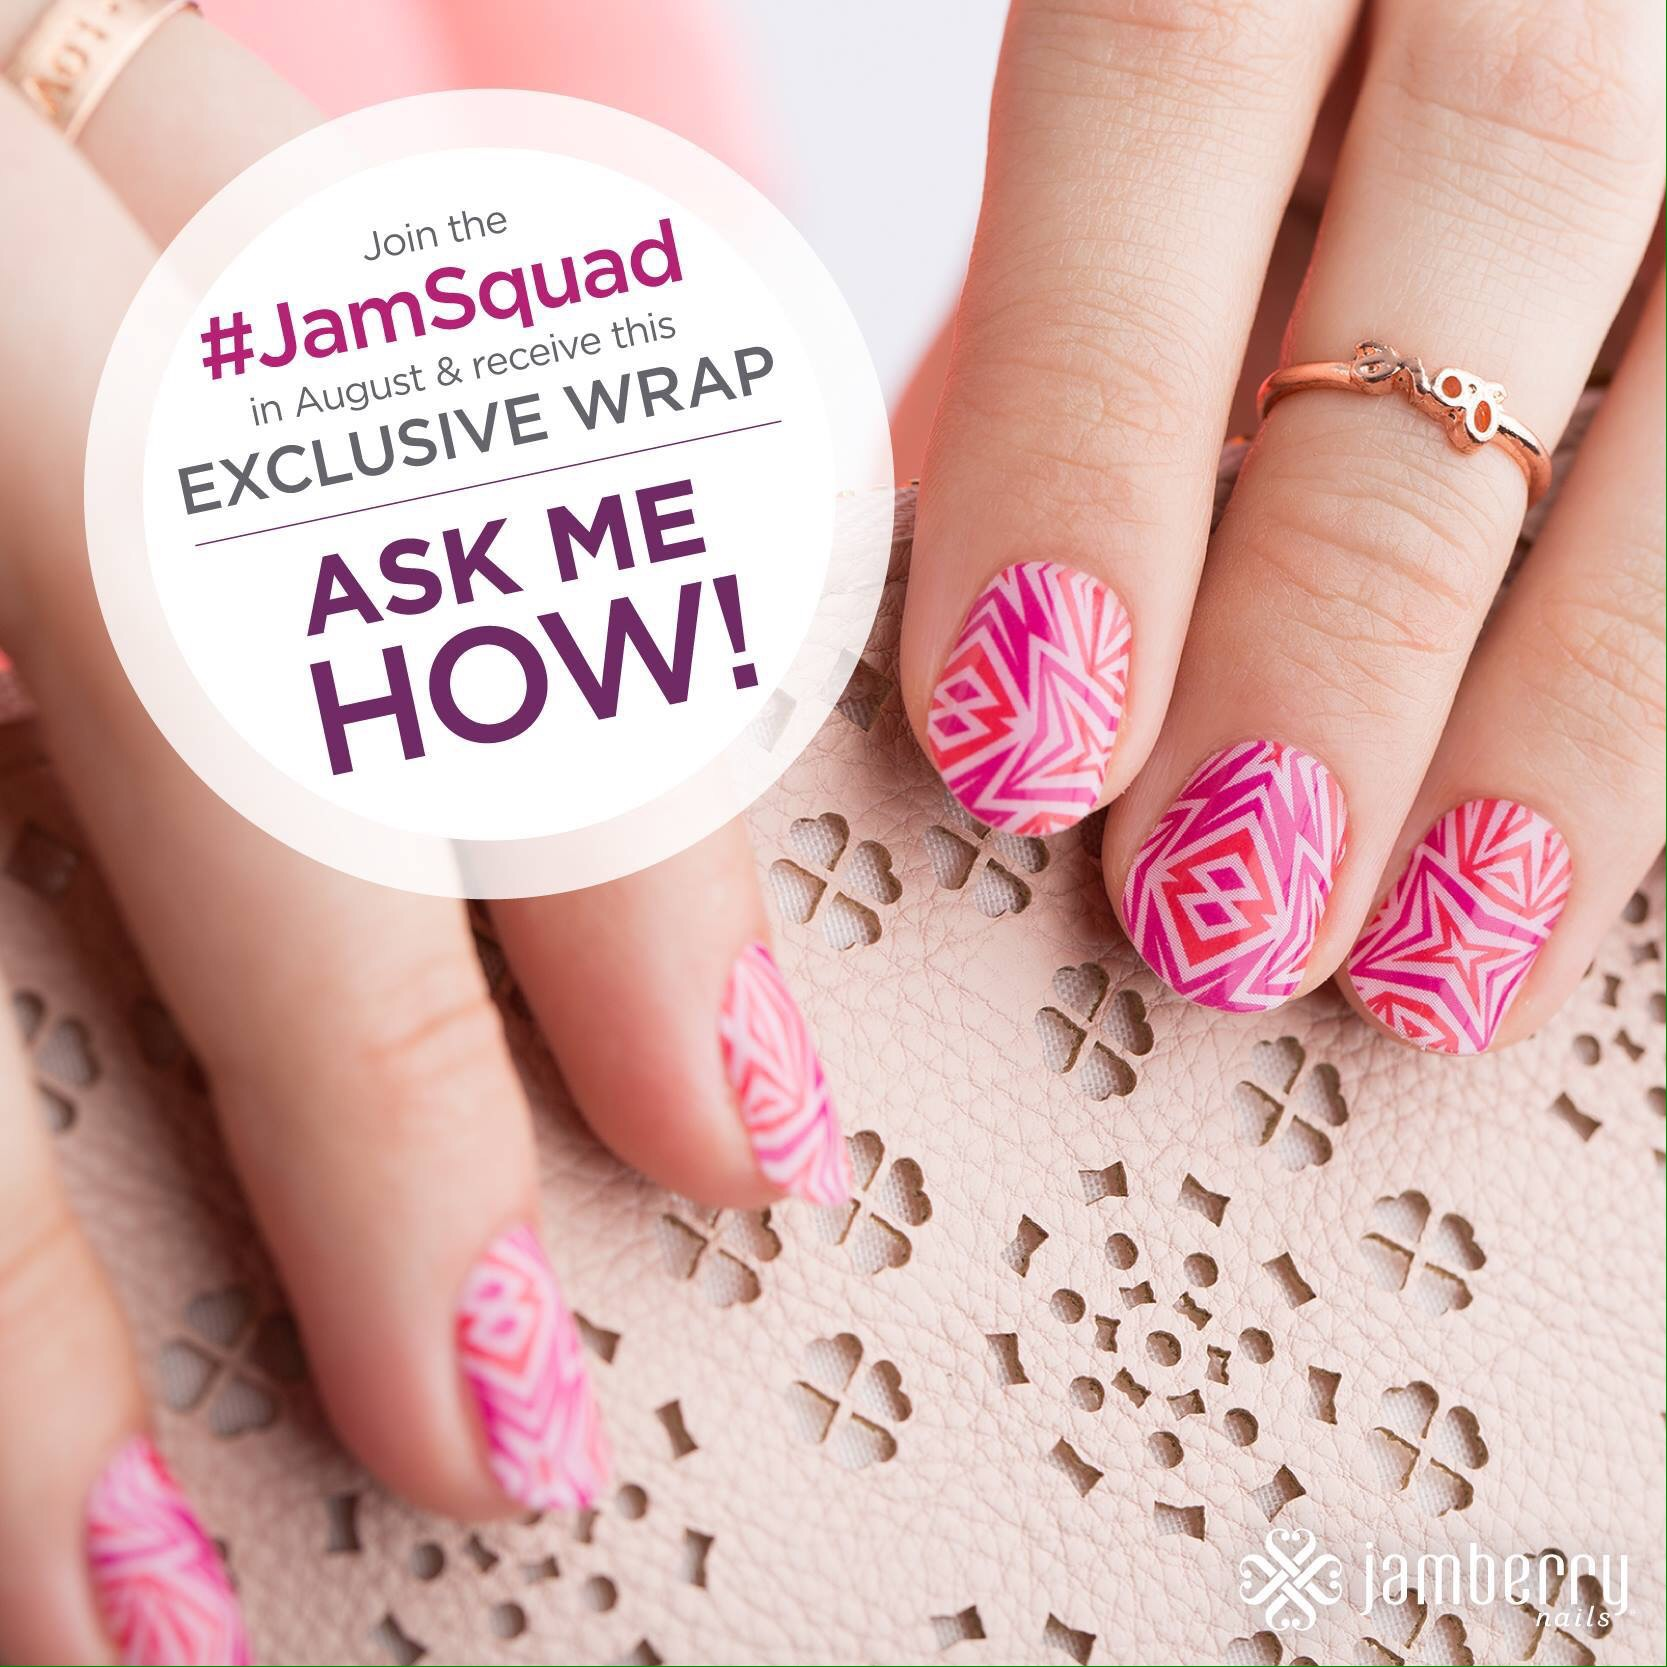 Join the Jamsquad in August